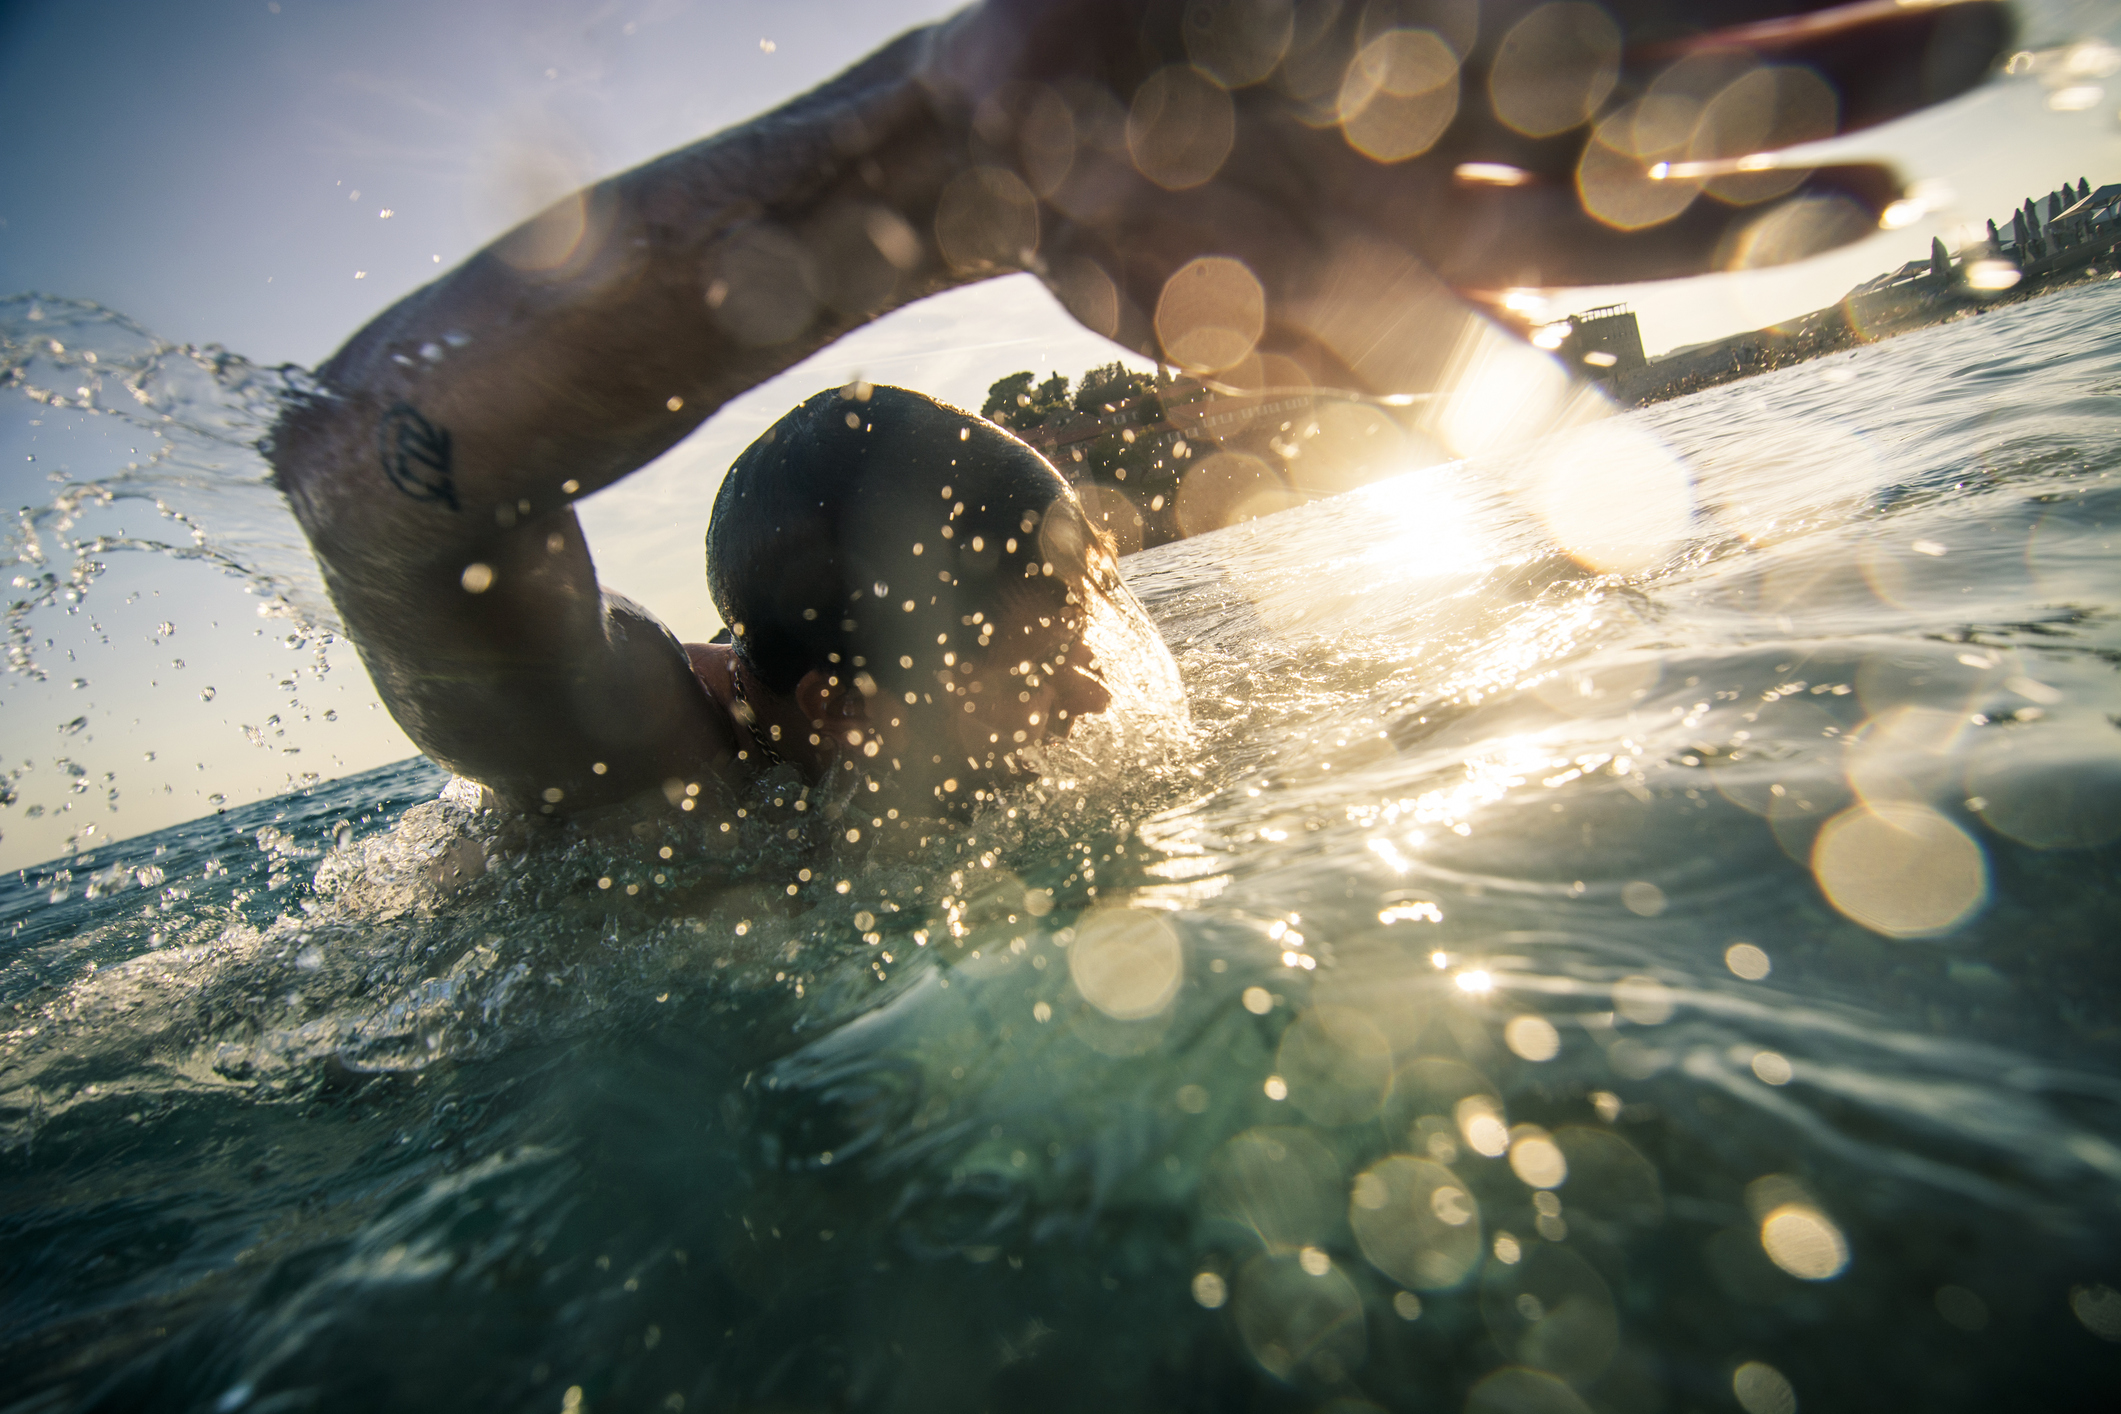 5 hidden hazards of summertime swimming